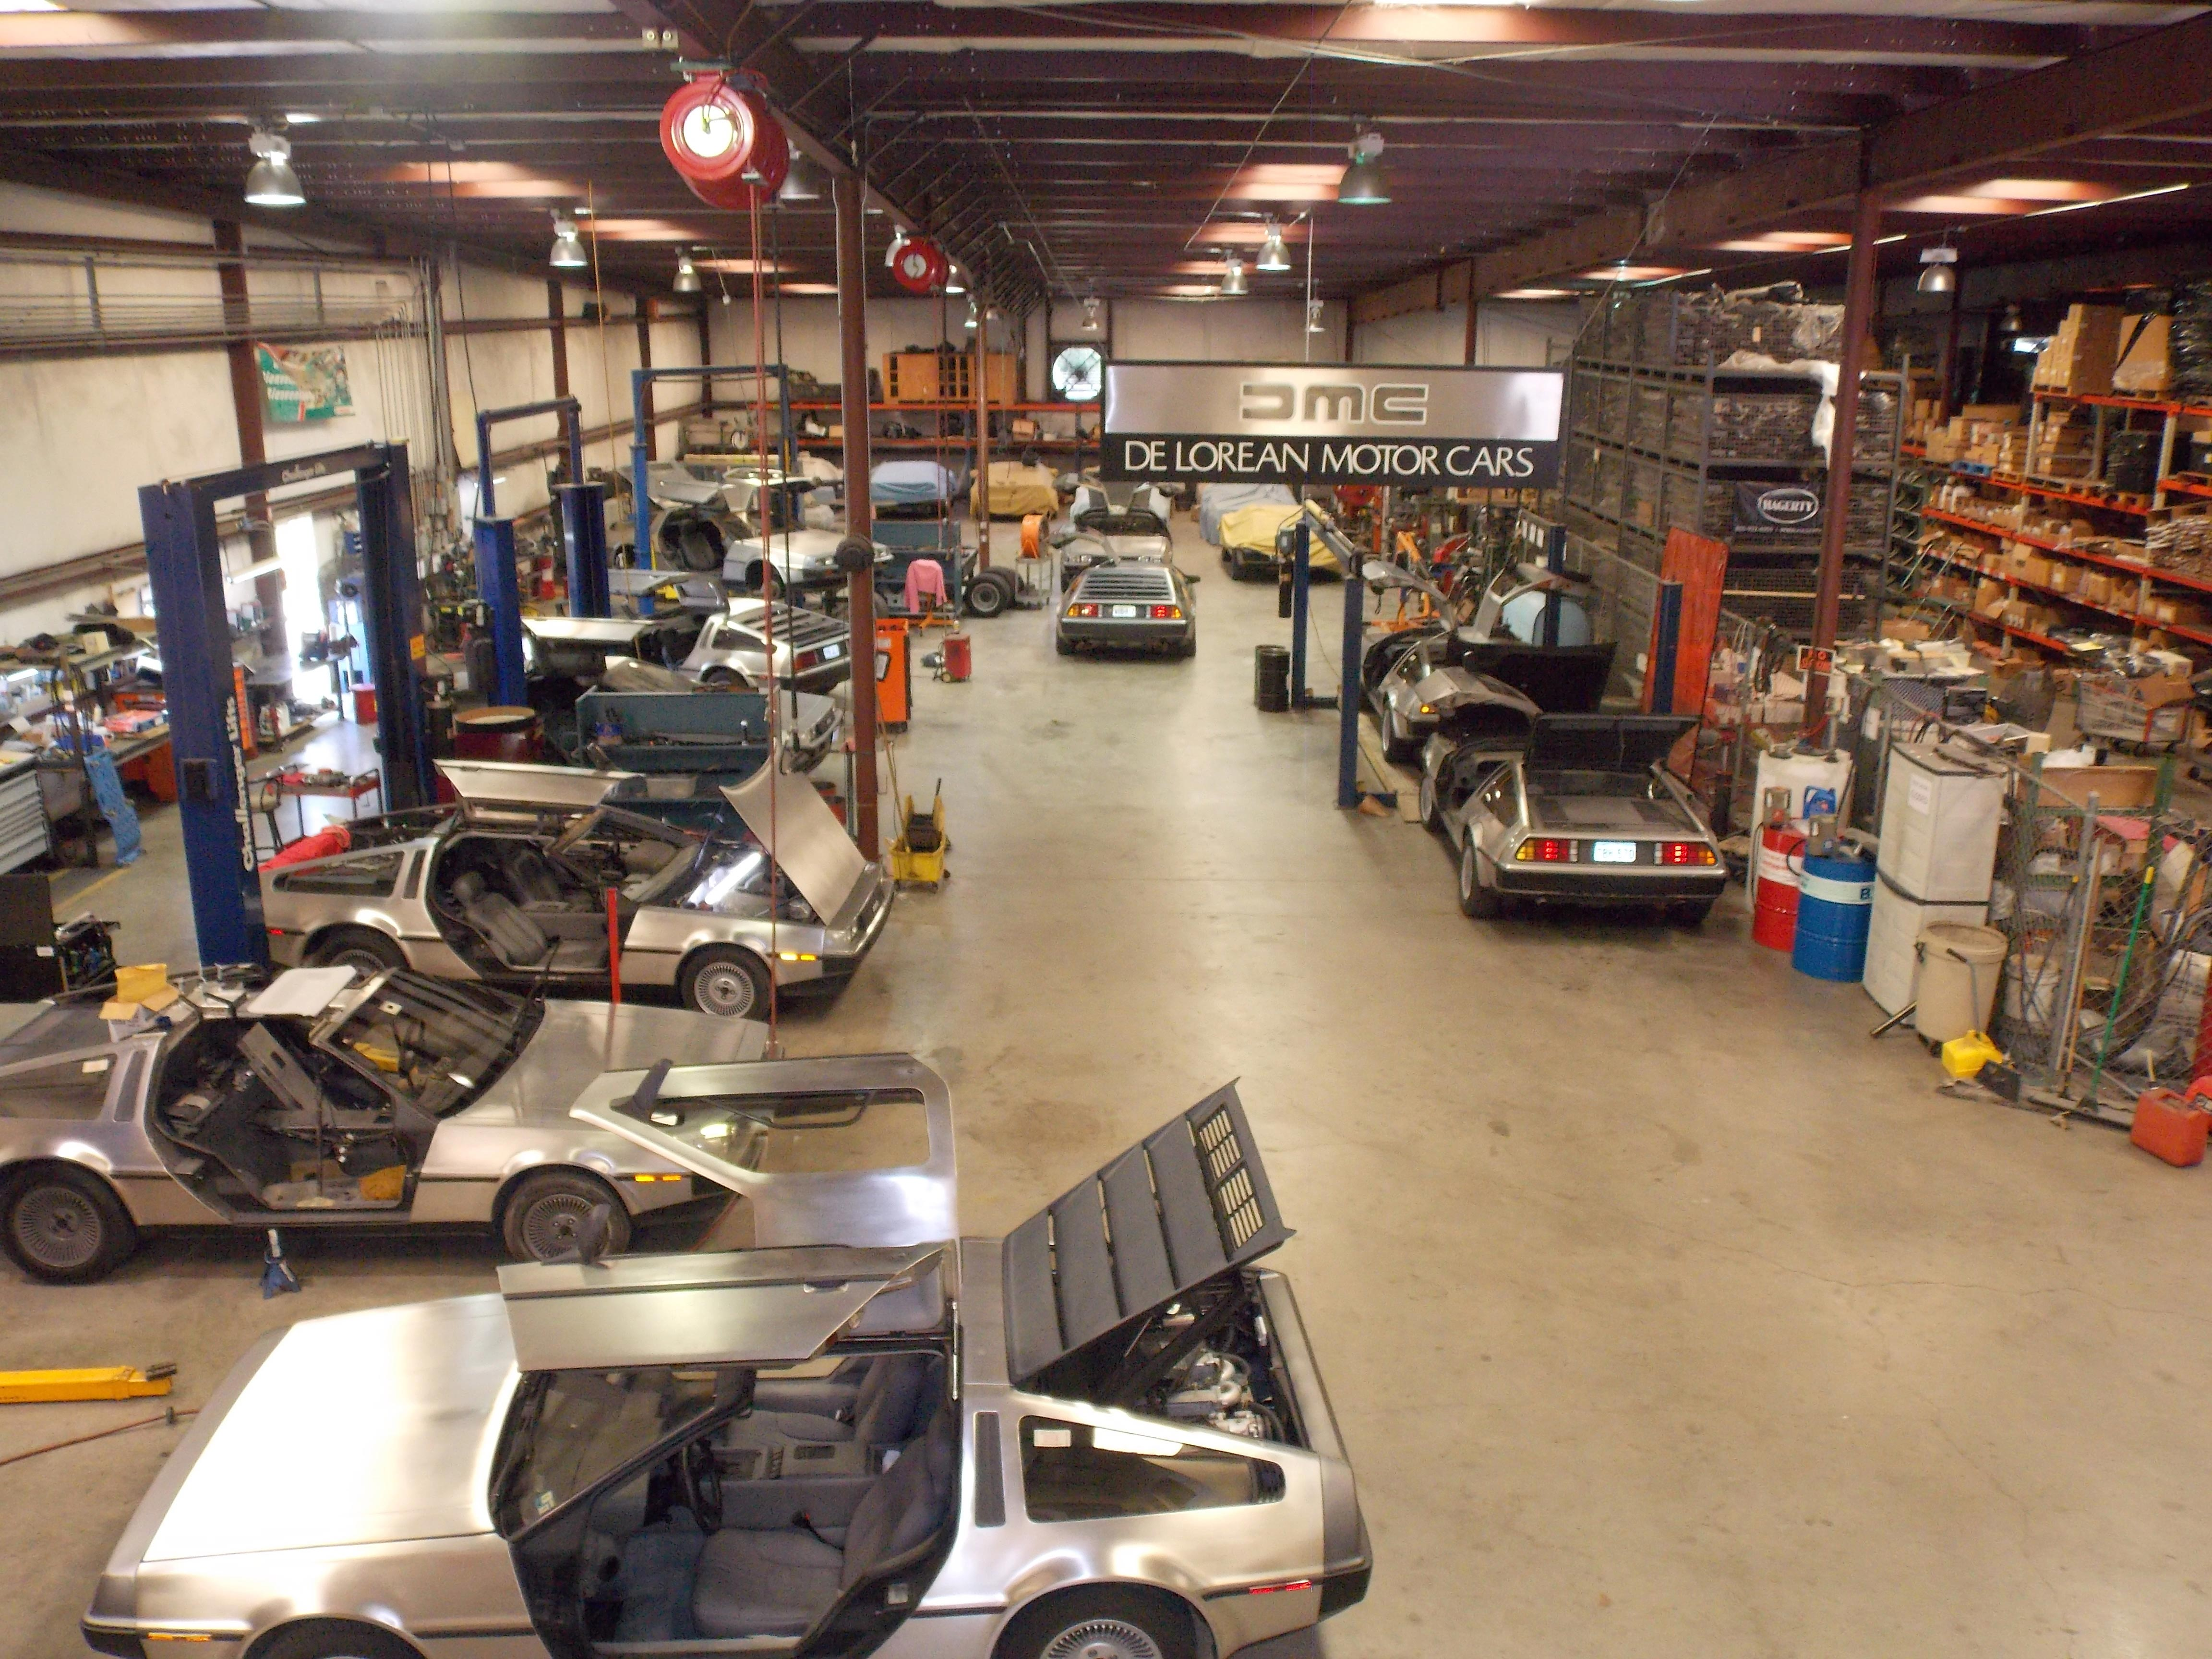 every day many fans of DeLorean and just curious tourists visit the factory